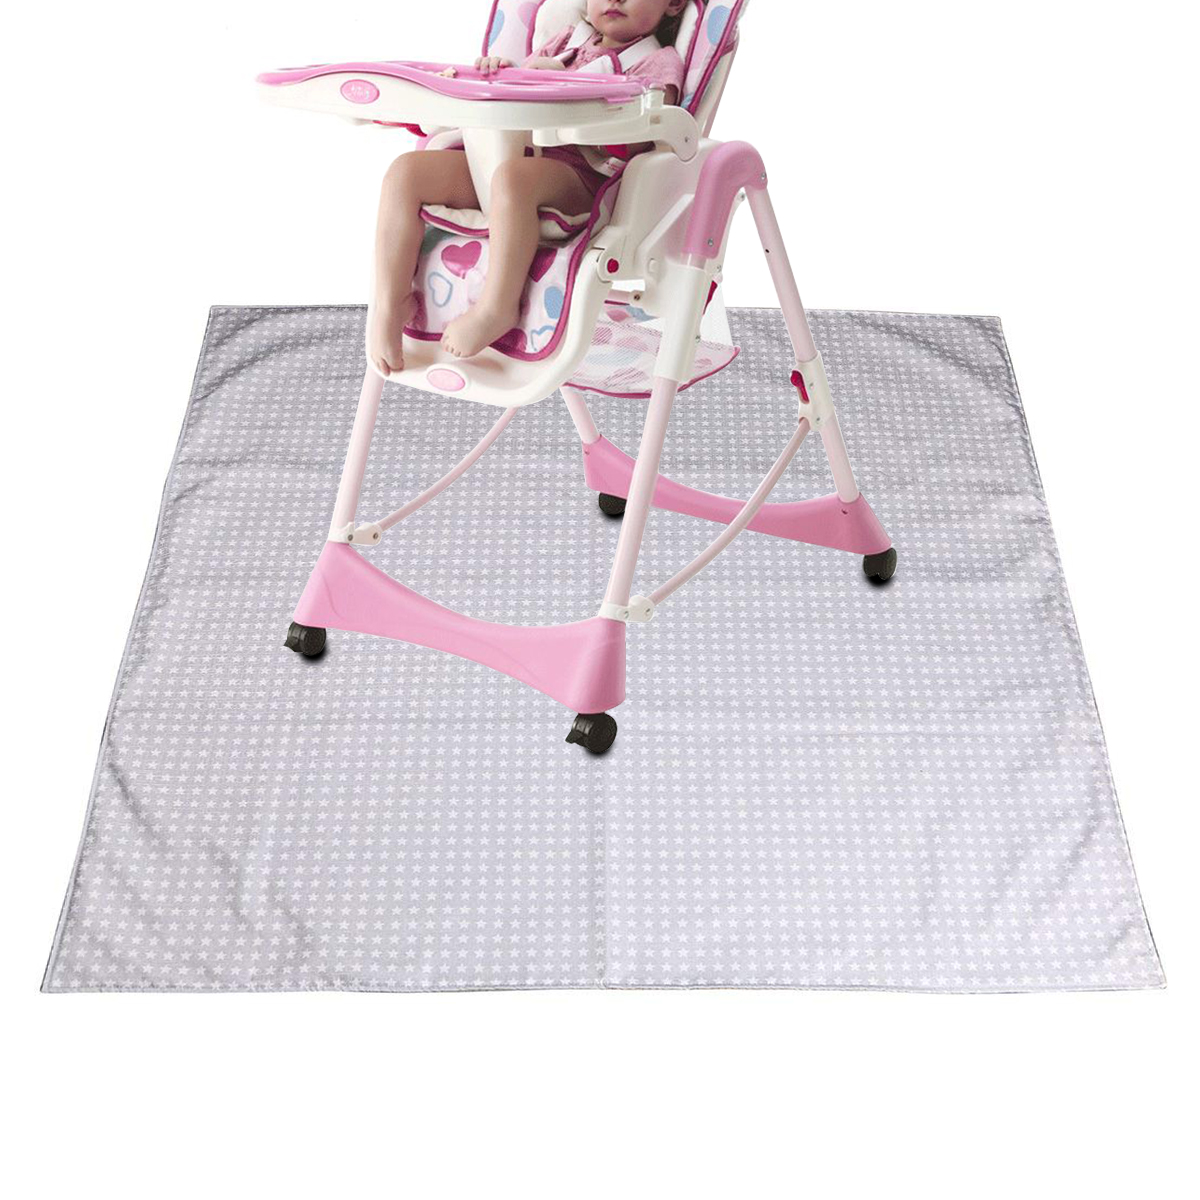 Baby High Chair Floor Mat Protector Cover Washable Splat